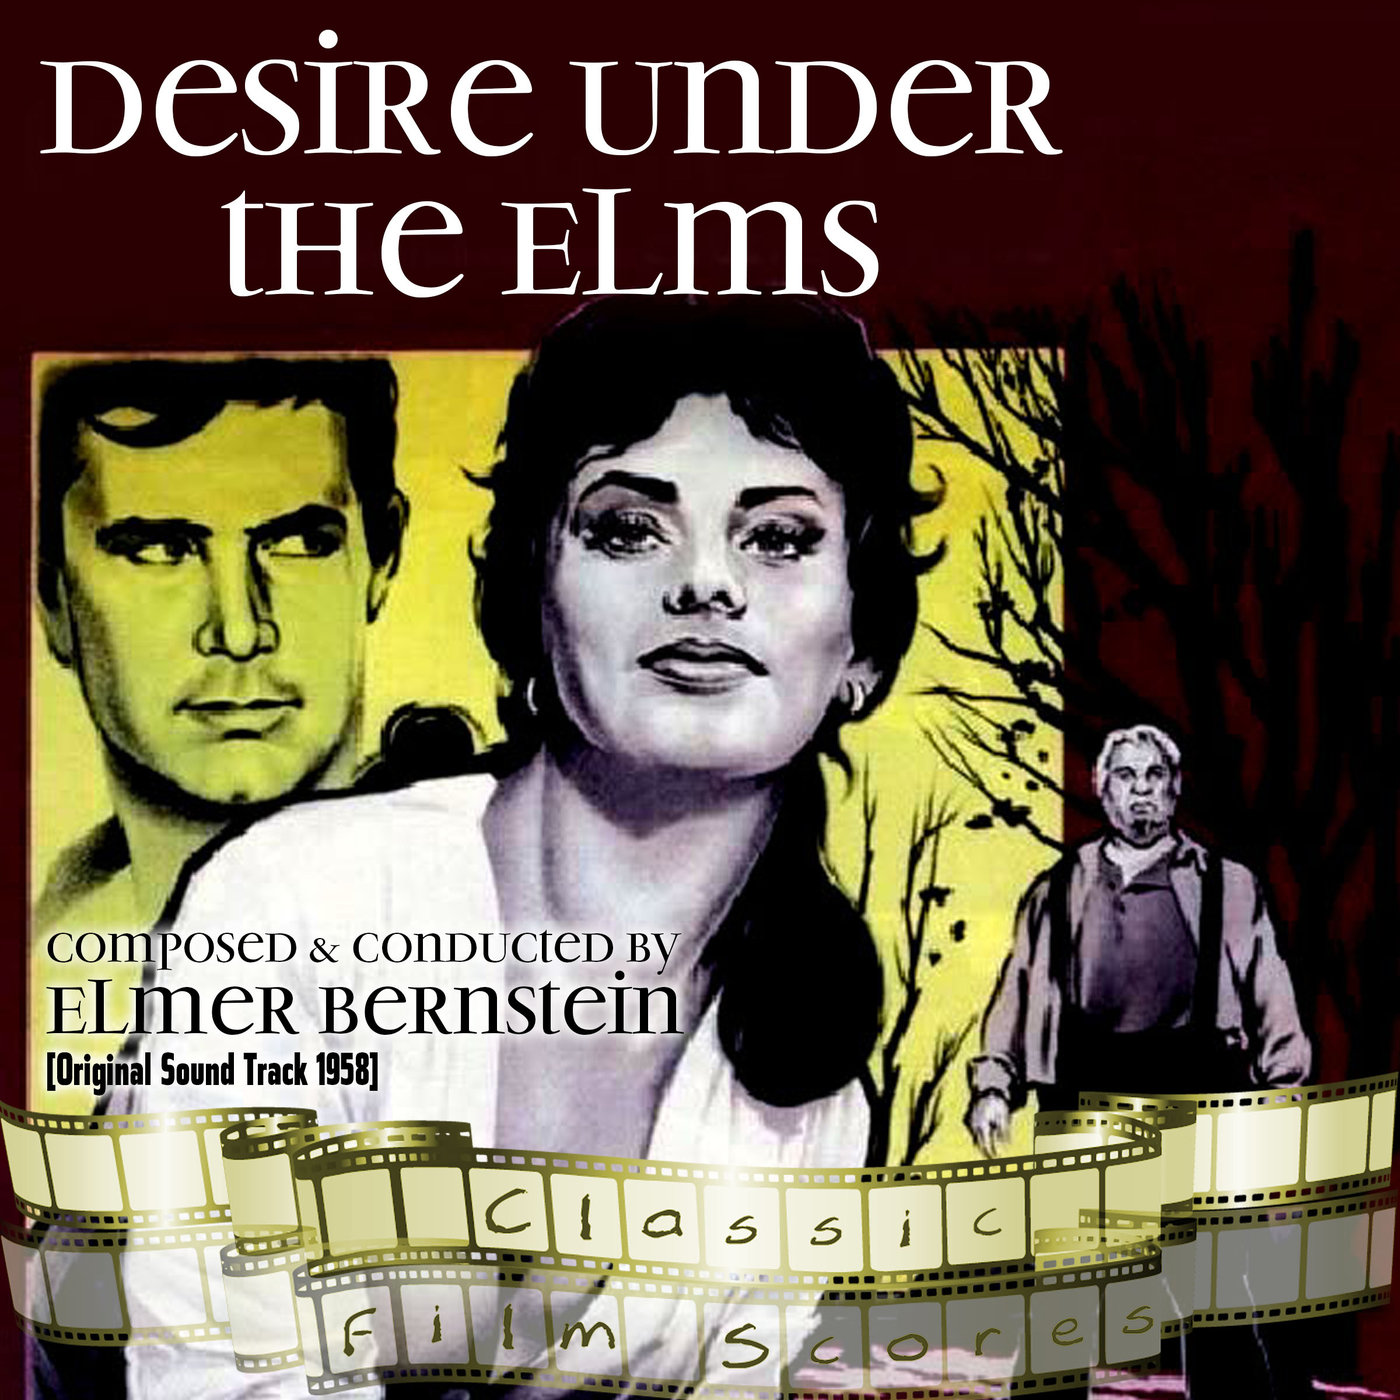 symbolism in desire under the elms Desire under the elms was inspired by plot elements and characters from the euripides play hippolytus o'neill takes this one step further in ''desire under the elms'' and makes abbie's misguided action the begetting and murder of her child.